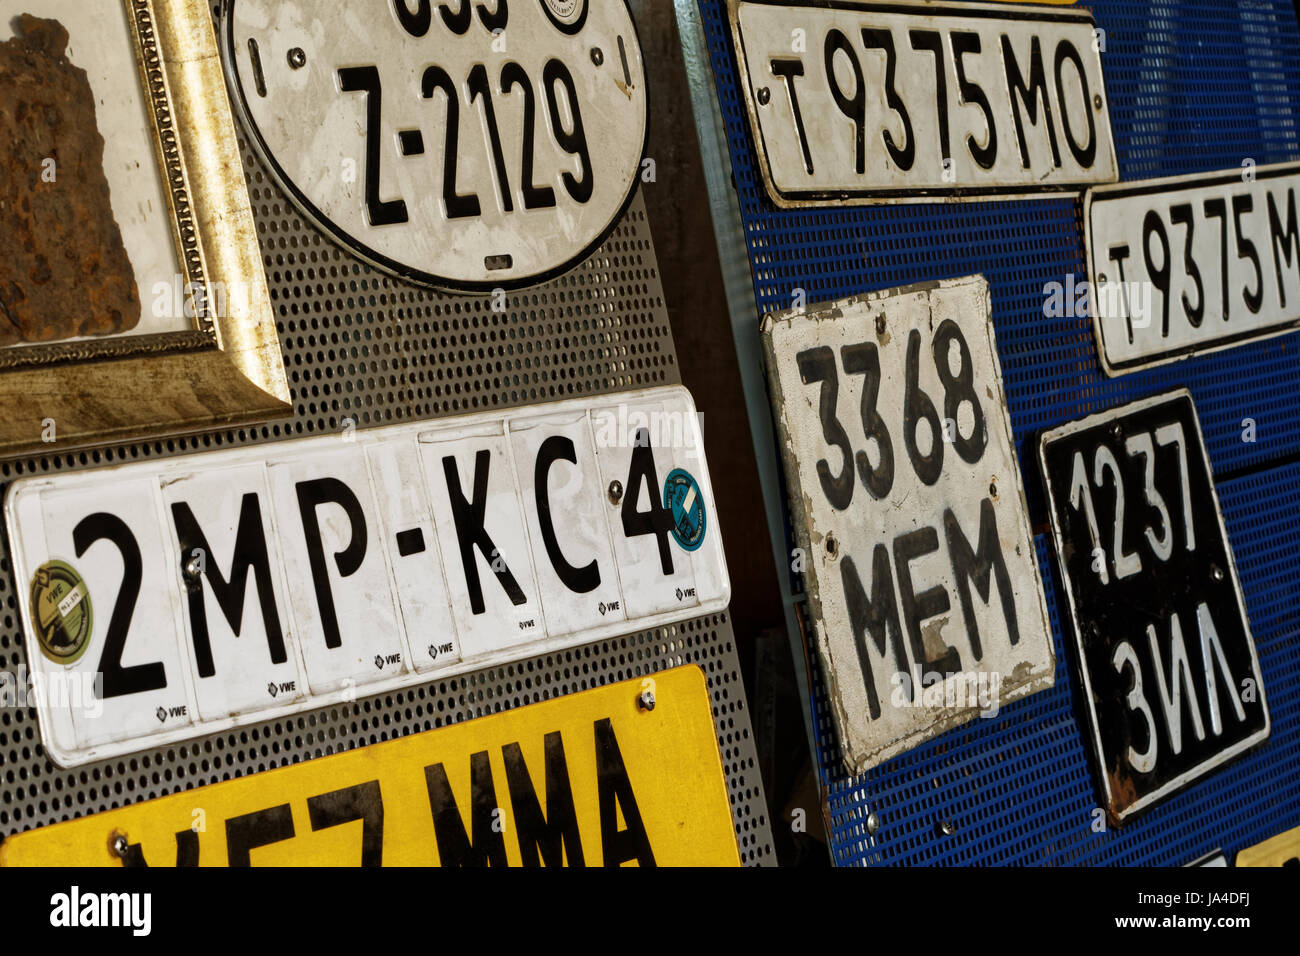 Old car plates Stock Photo, Royalty Free Image: 143927942 - Alamy